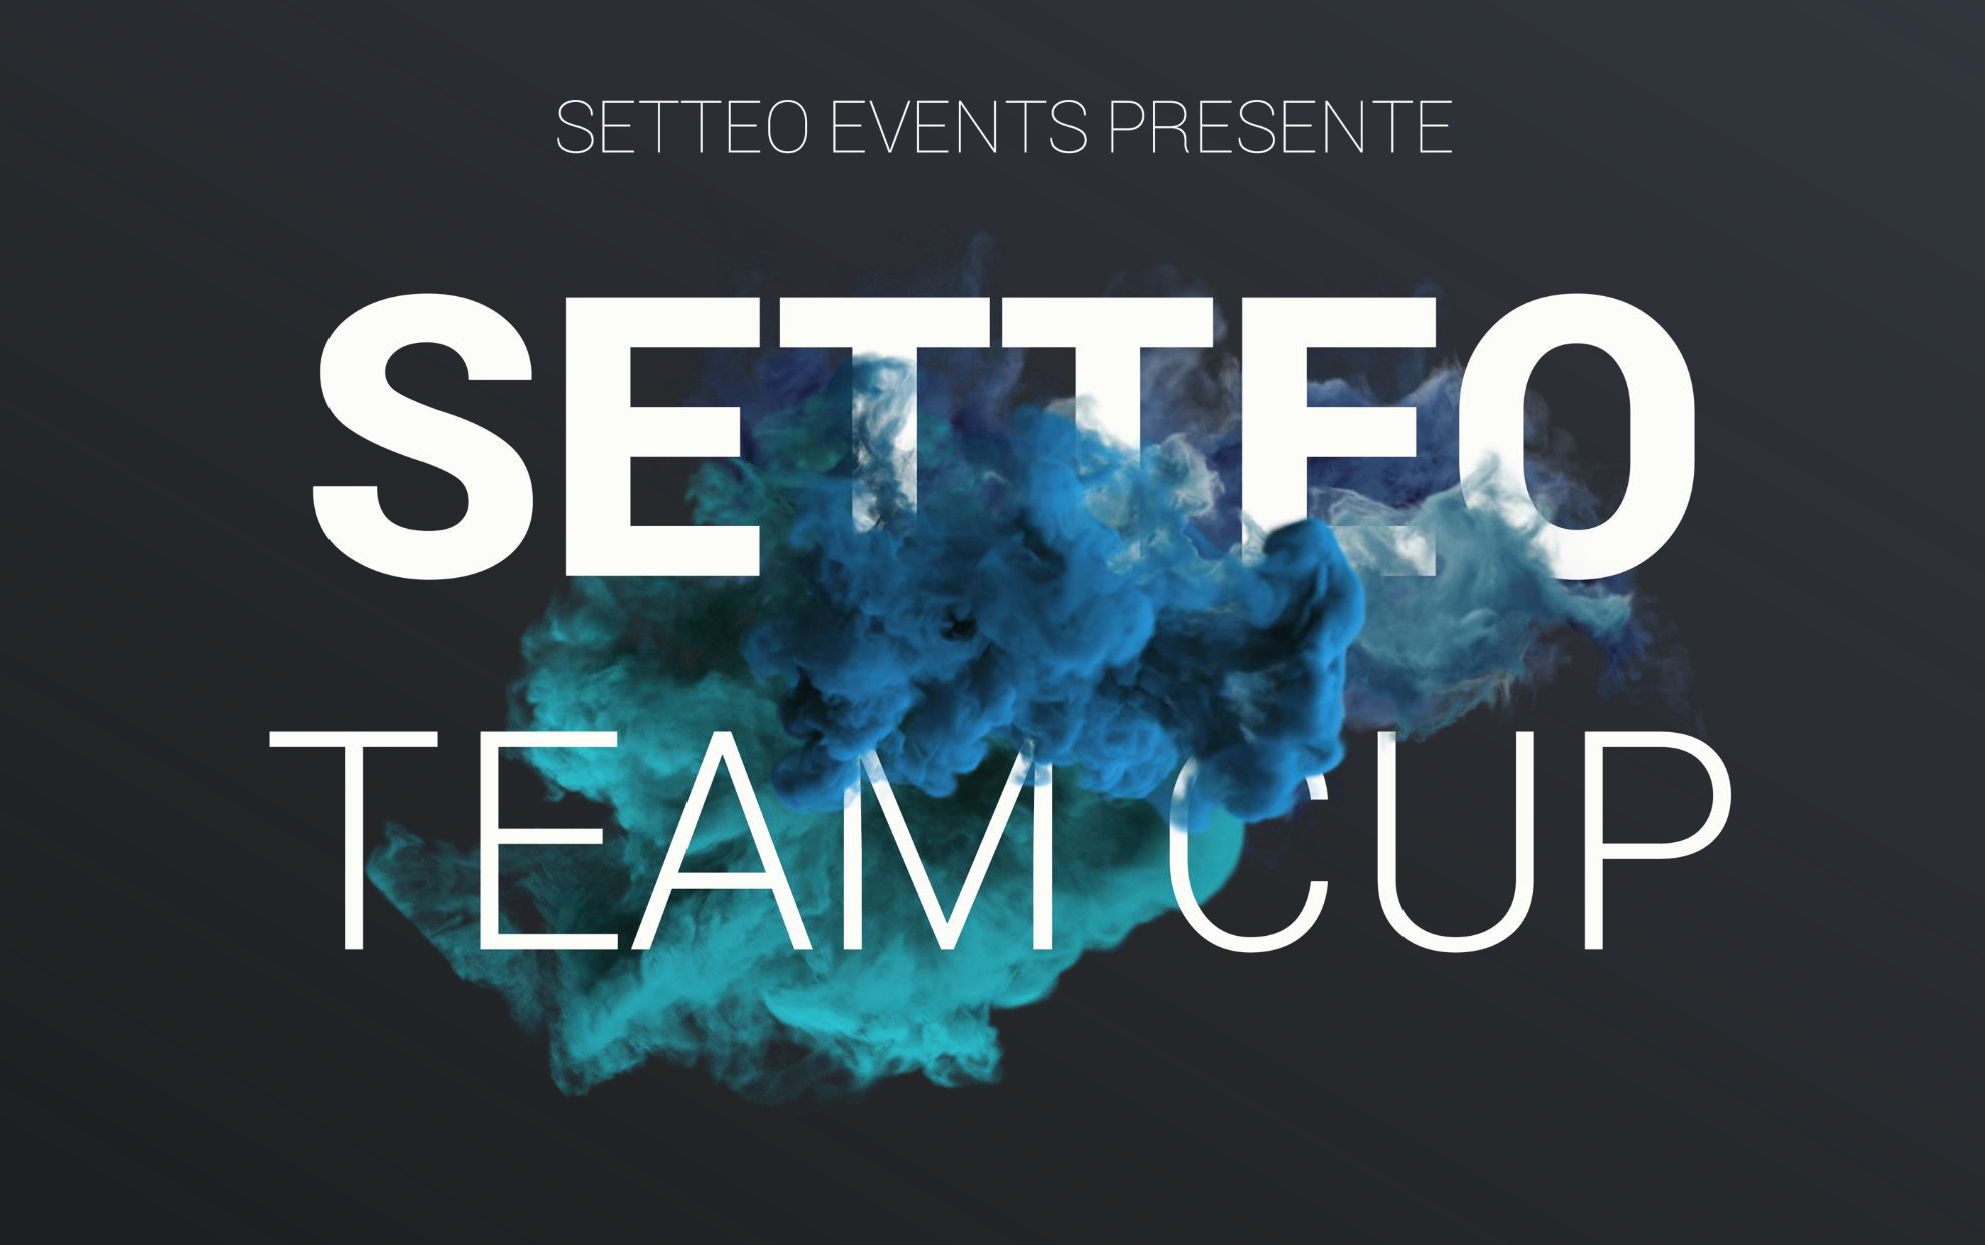 Launch of the Setteo Team Cup 2019: Discover all the news!